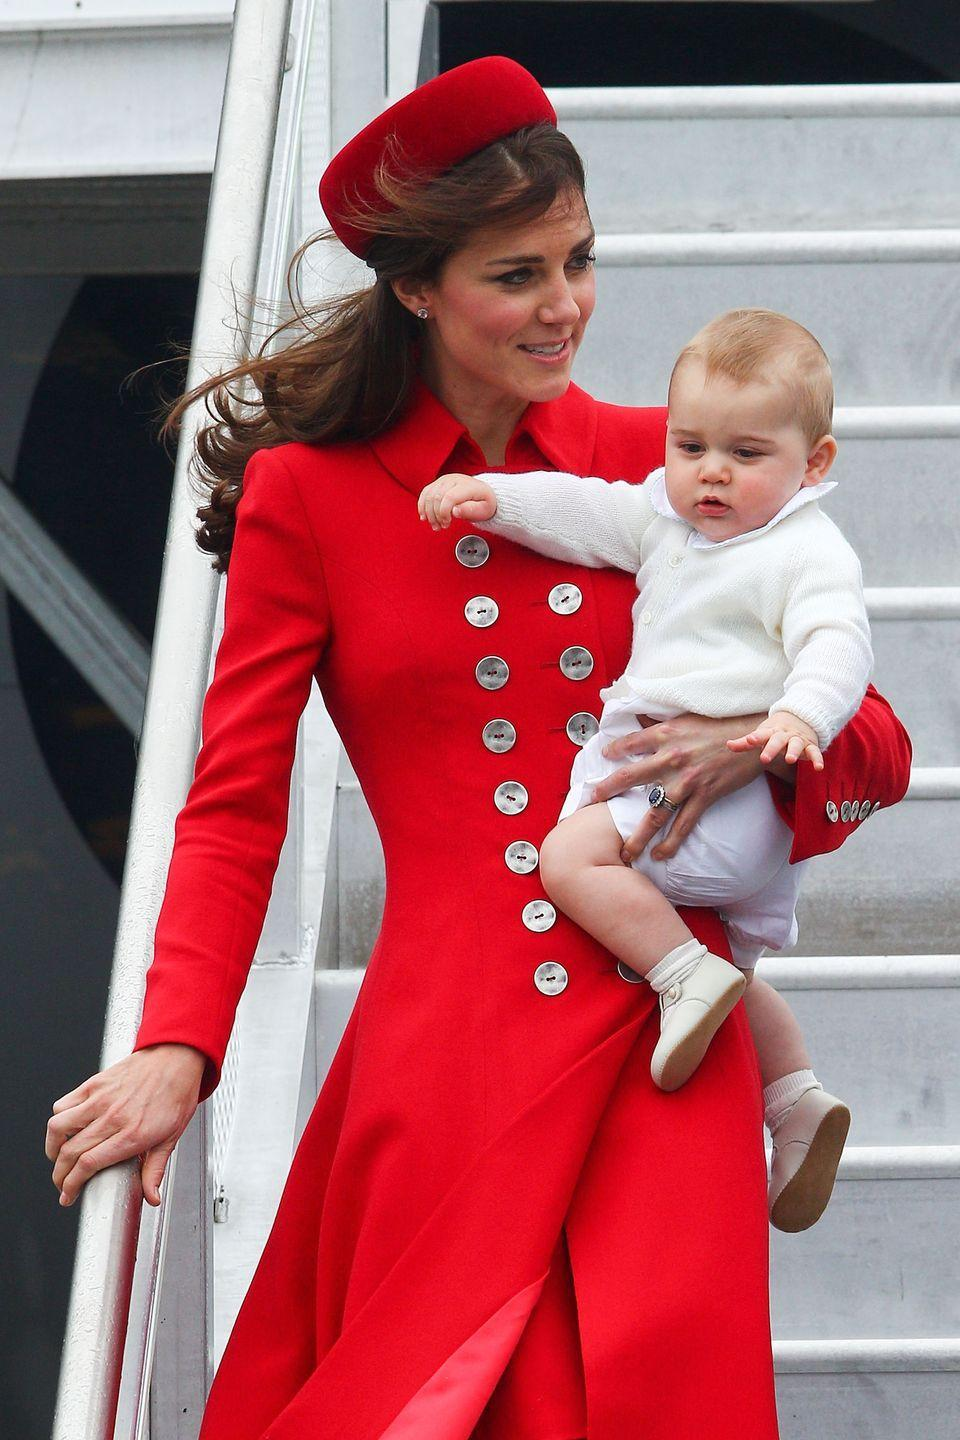 <p>The Duchess, on more than one occasion, has had to walk down steep stairs in front of hoards of photographers, <em>while</em> holding the future King in her arms. In other words, she's got no time for a face full of hair. Her clever hack: Always wear a hat at the airport. </p>